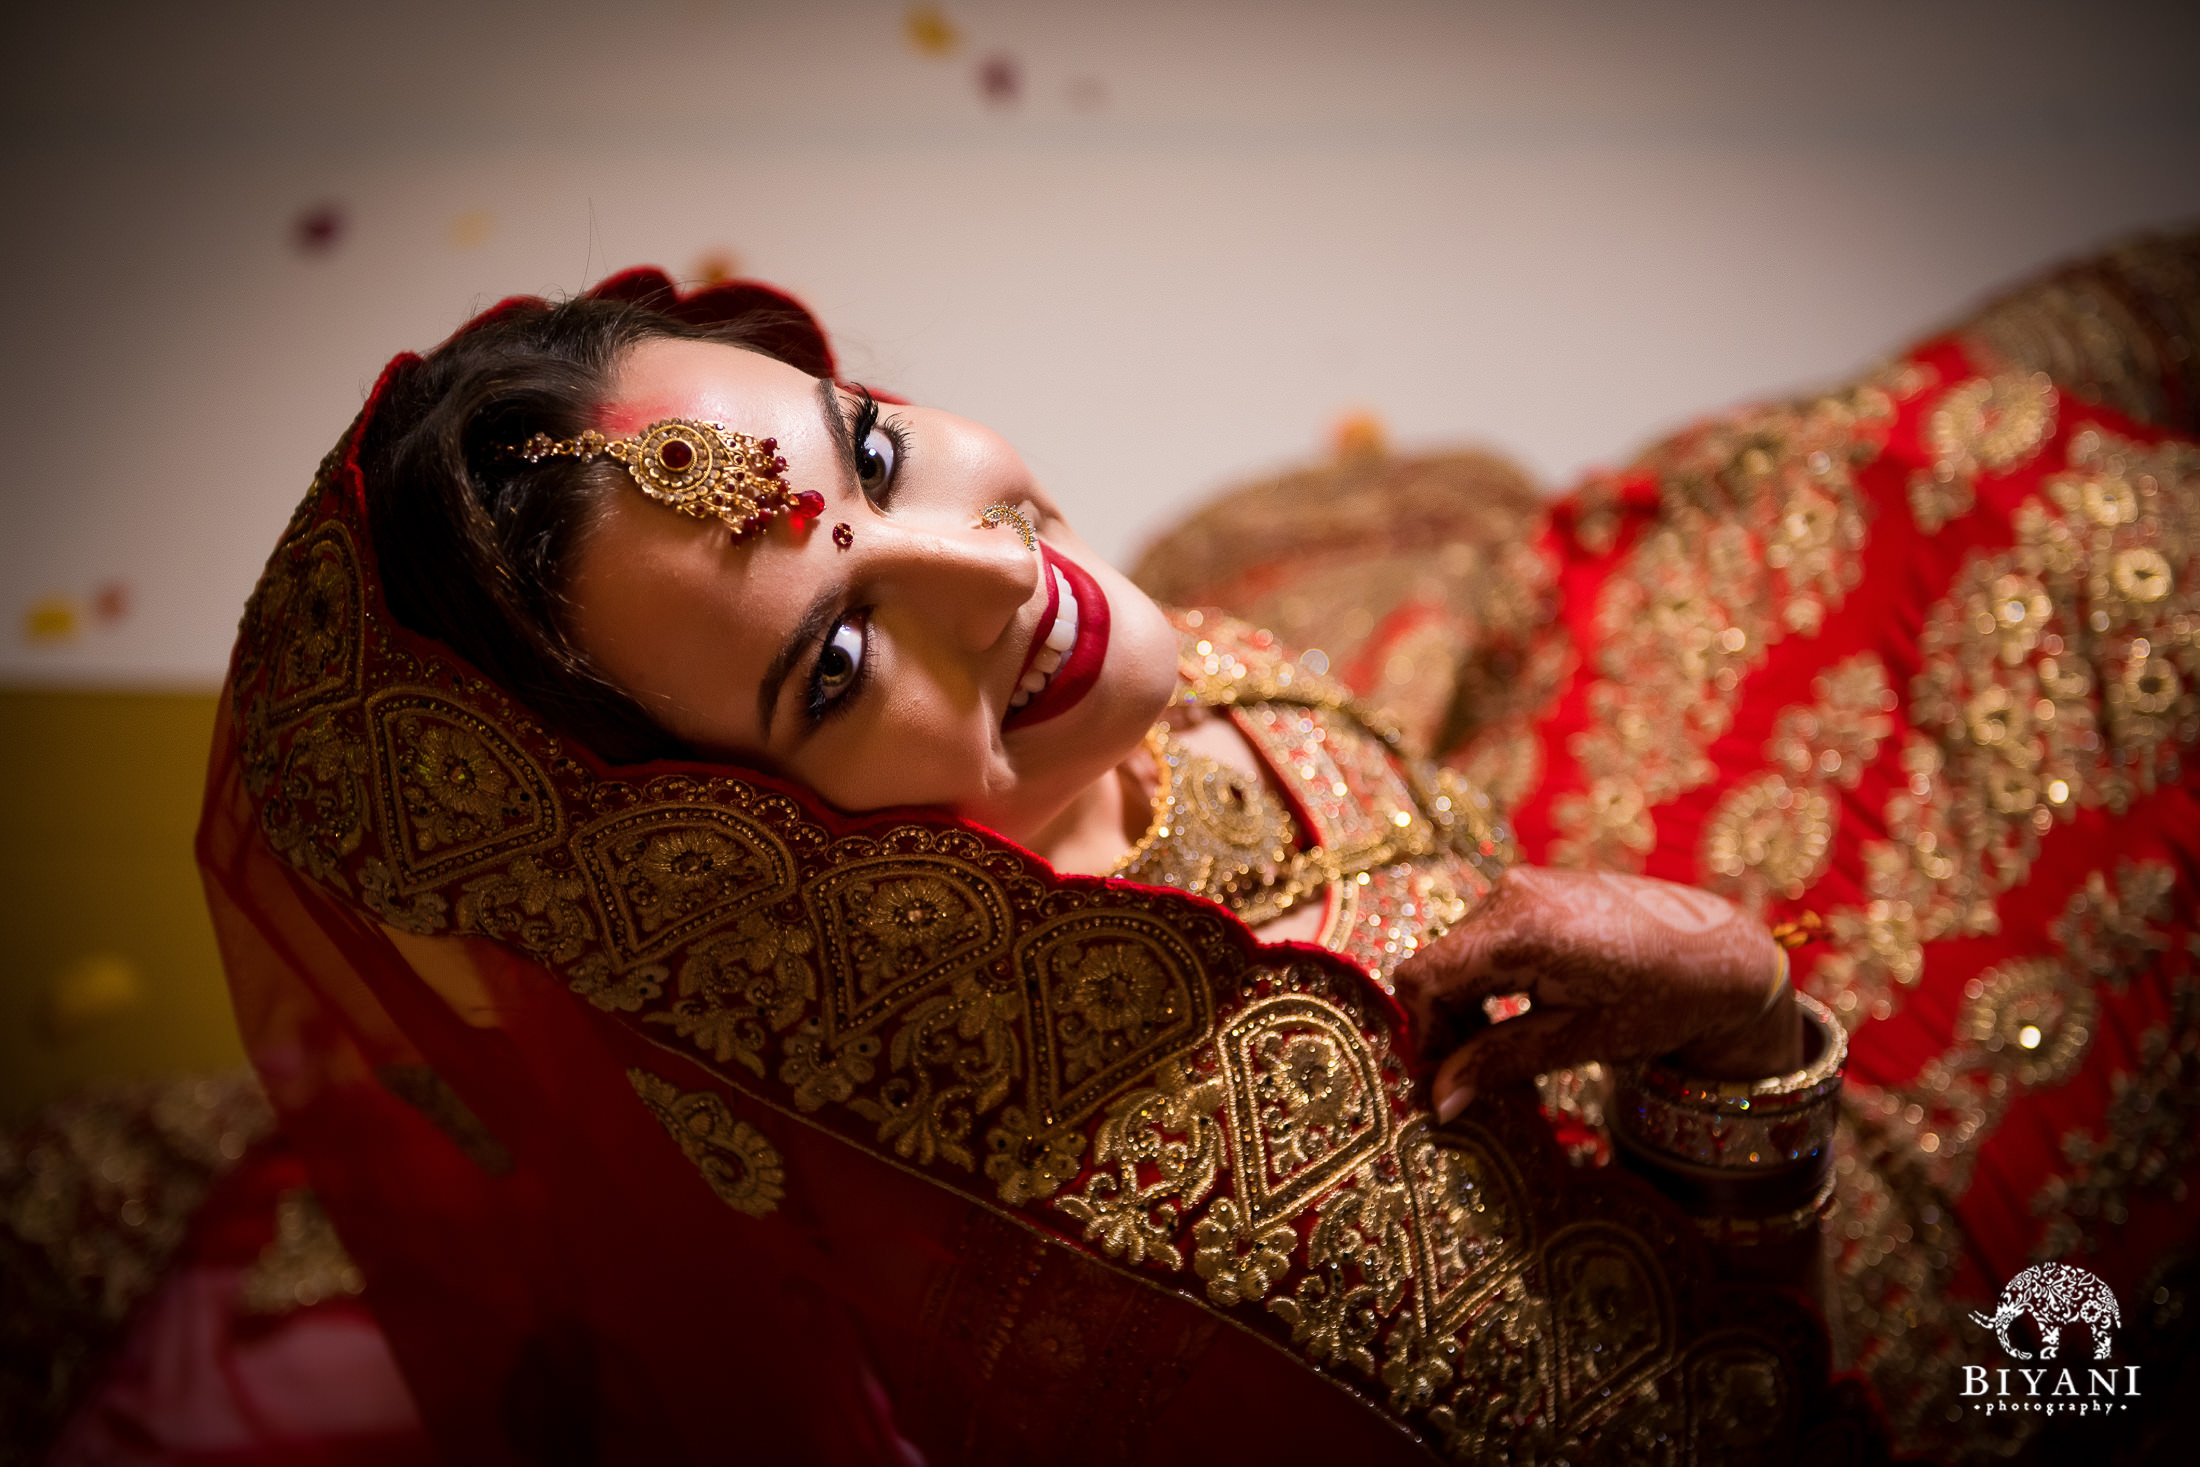 Bride poses in wedding ceremony outfit